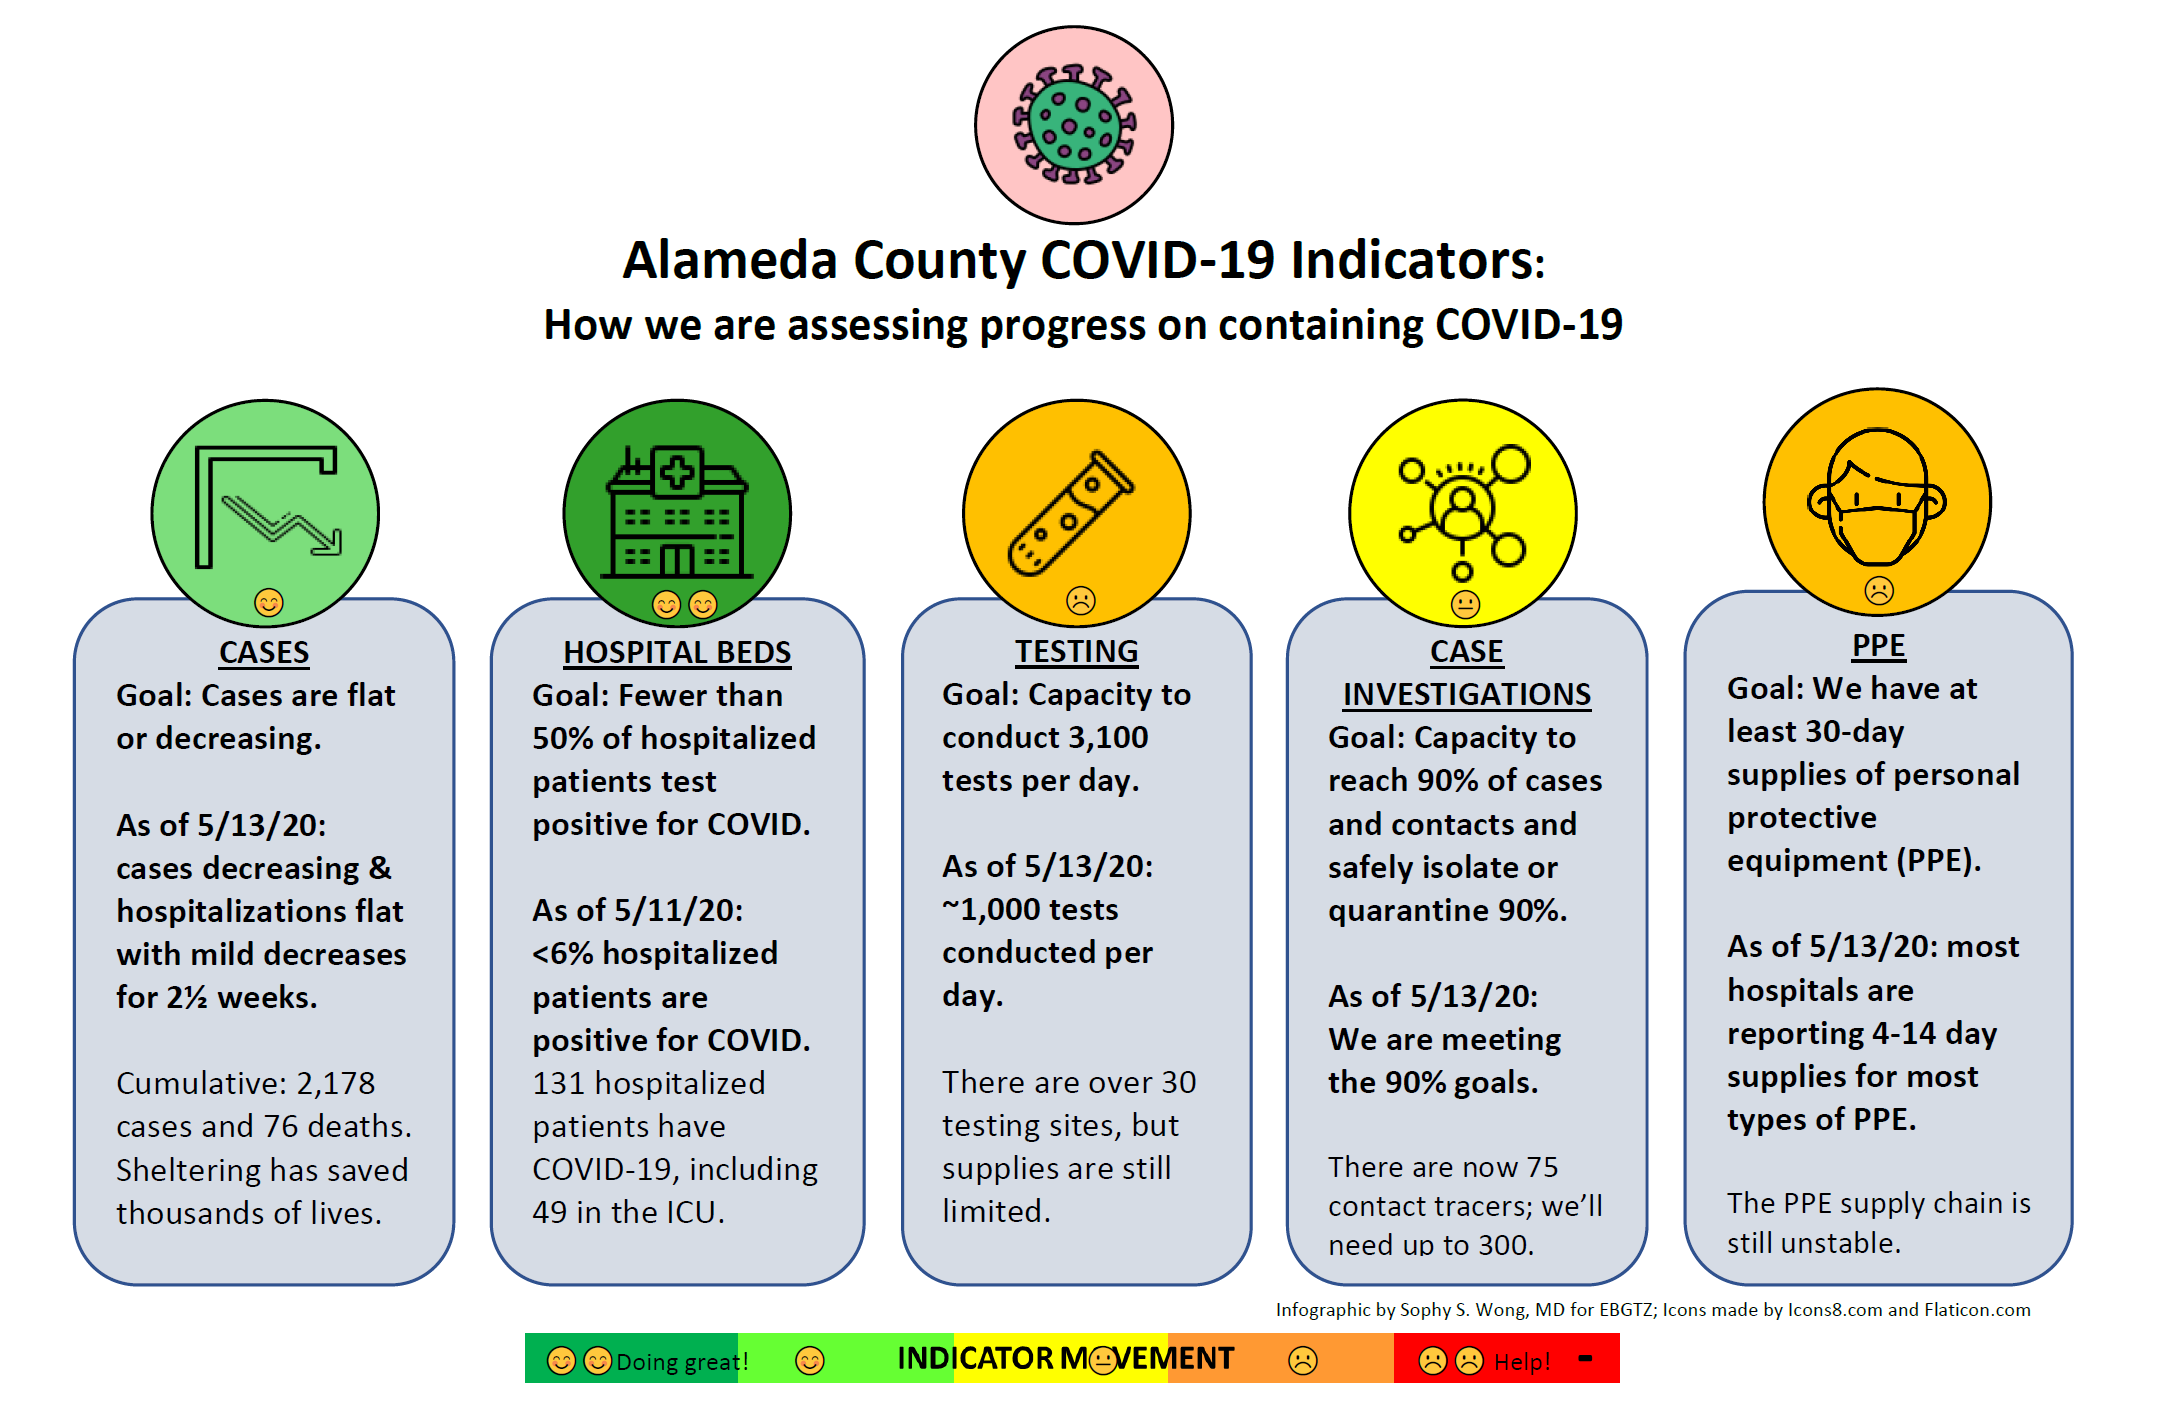 EBGTZ Alameda County COVID Indicators infographic 5.13.20 stoplight report